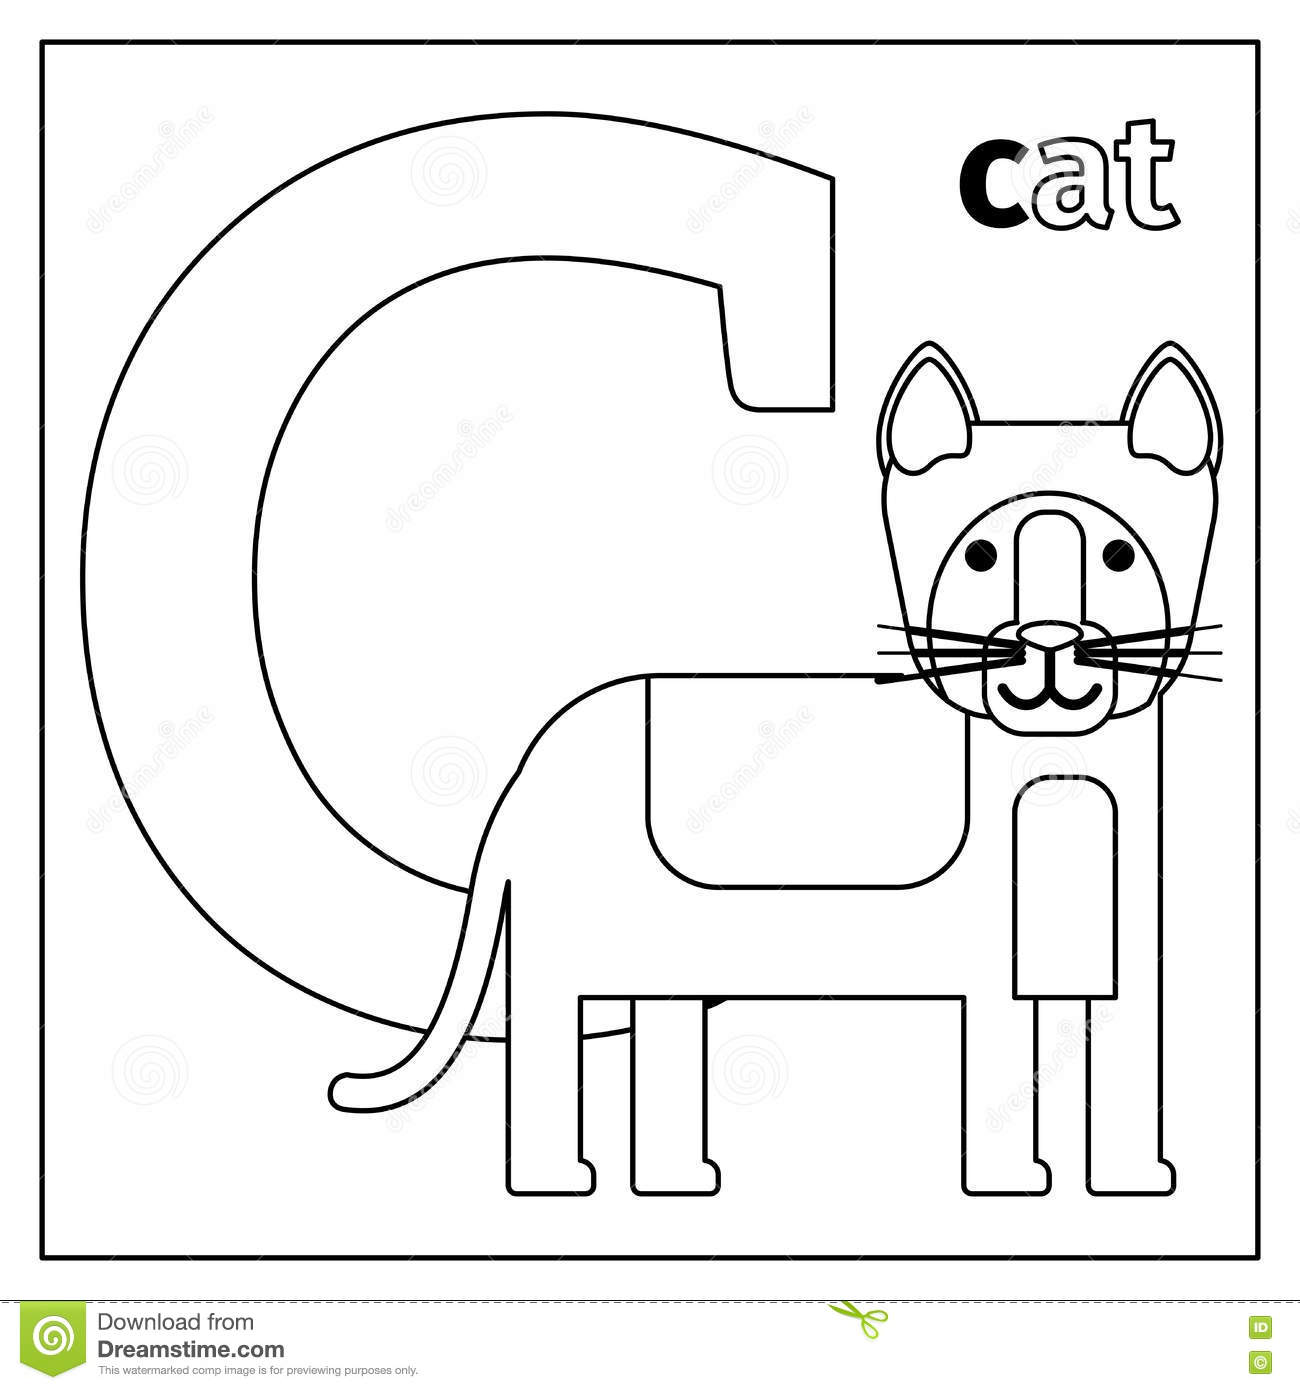 Cat, Letter C Coloring Page Stock Vector - Illustration of ...